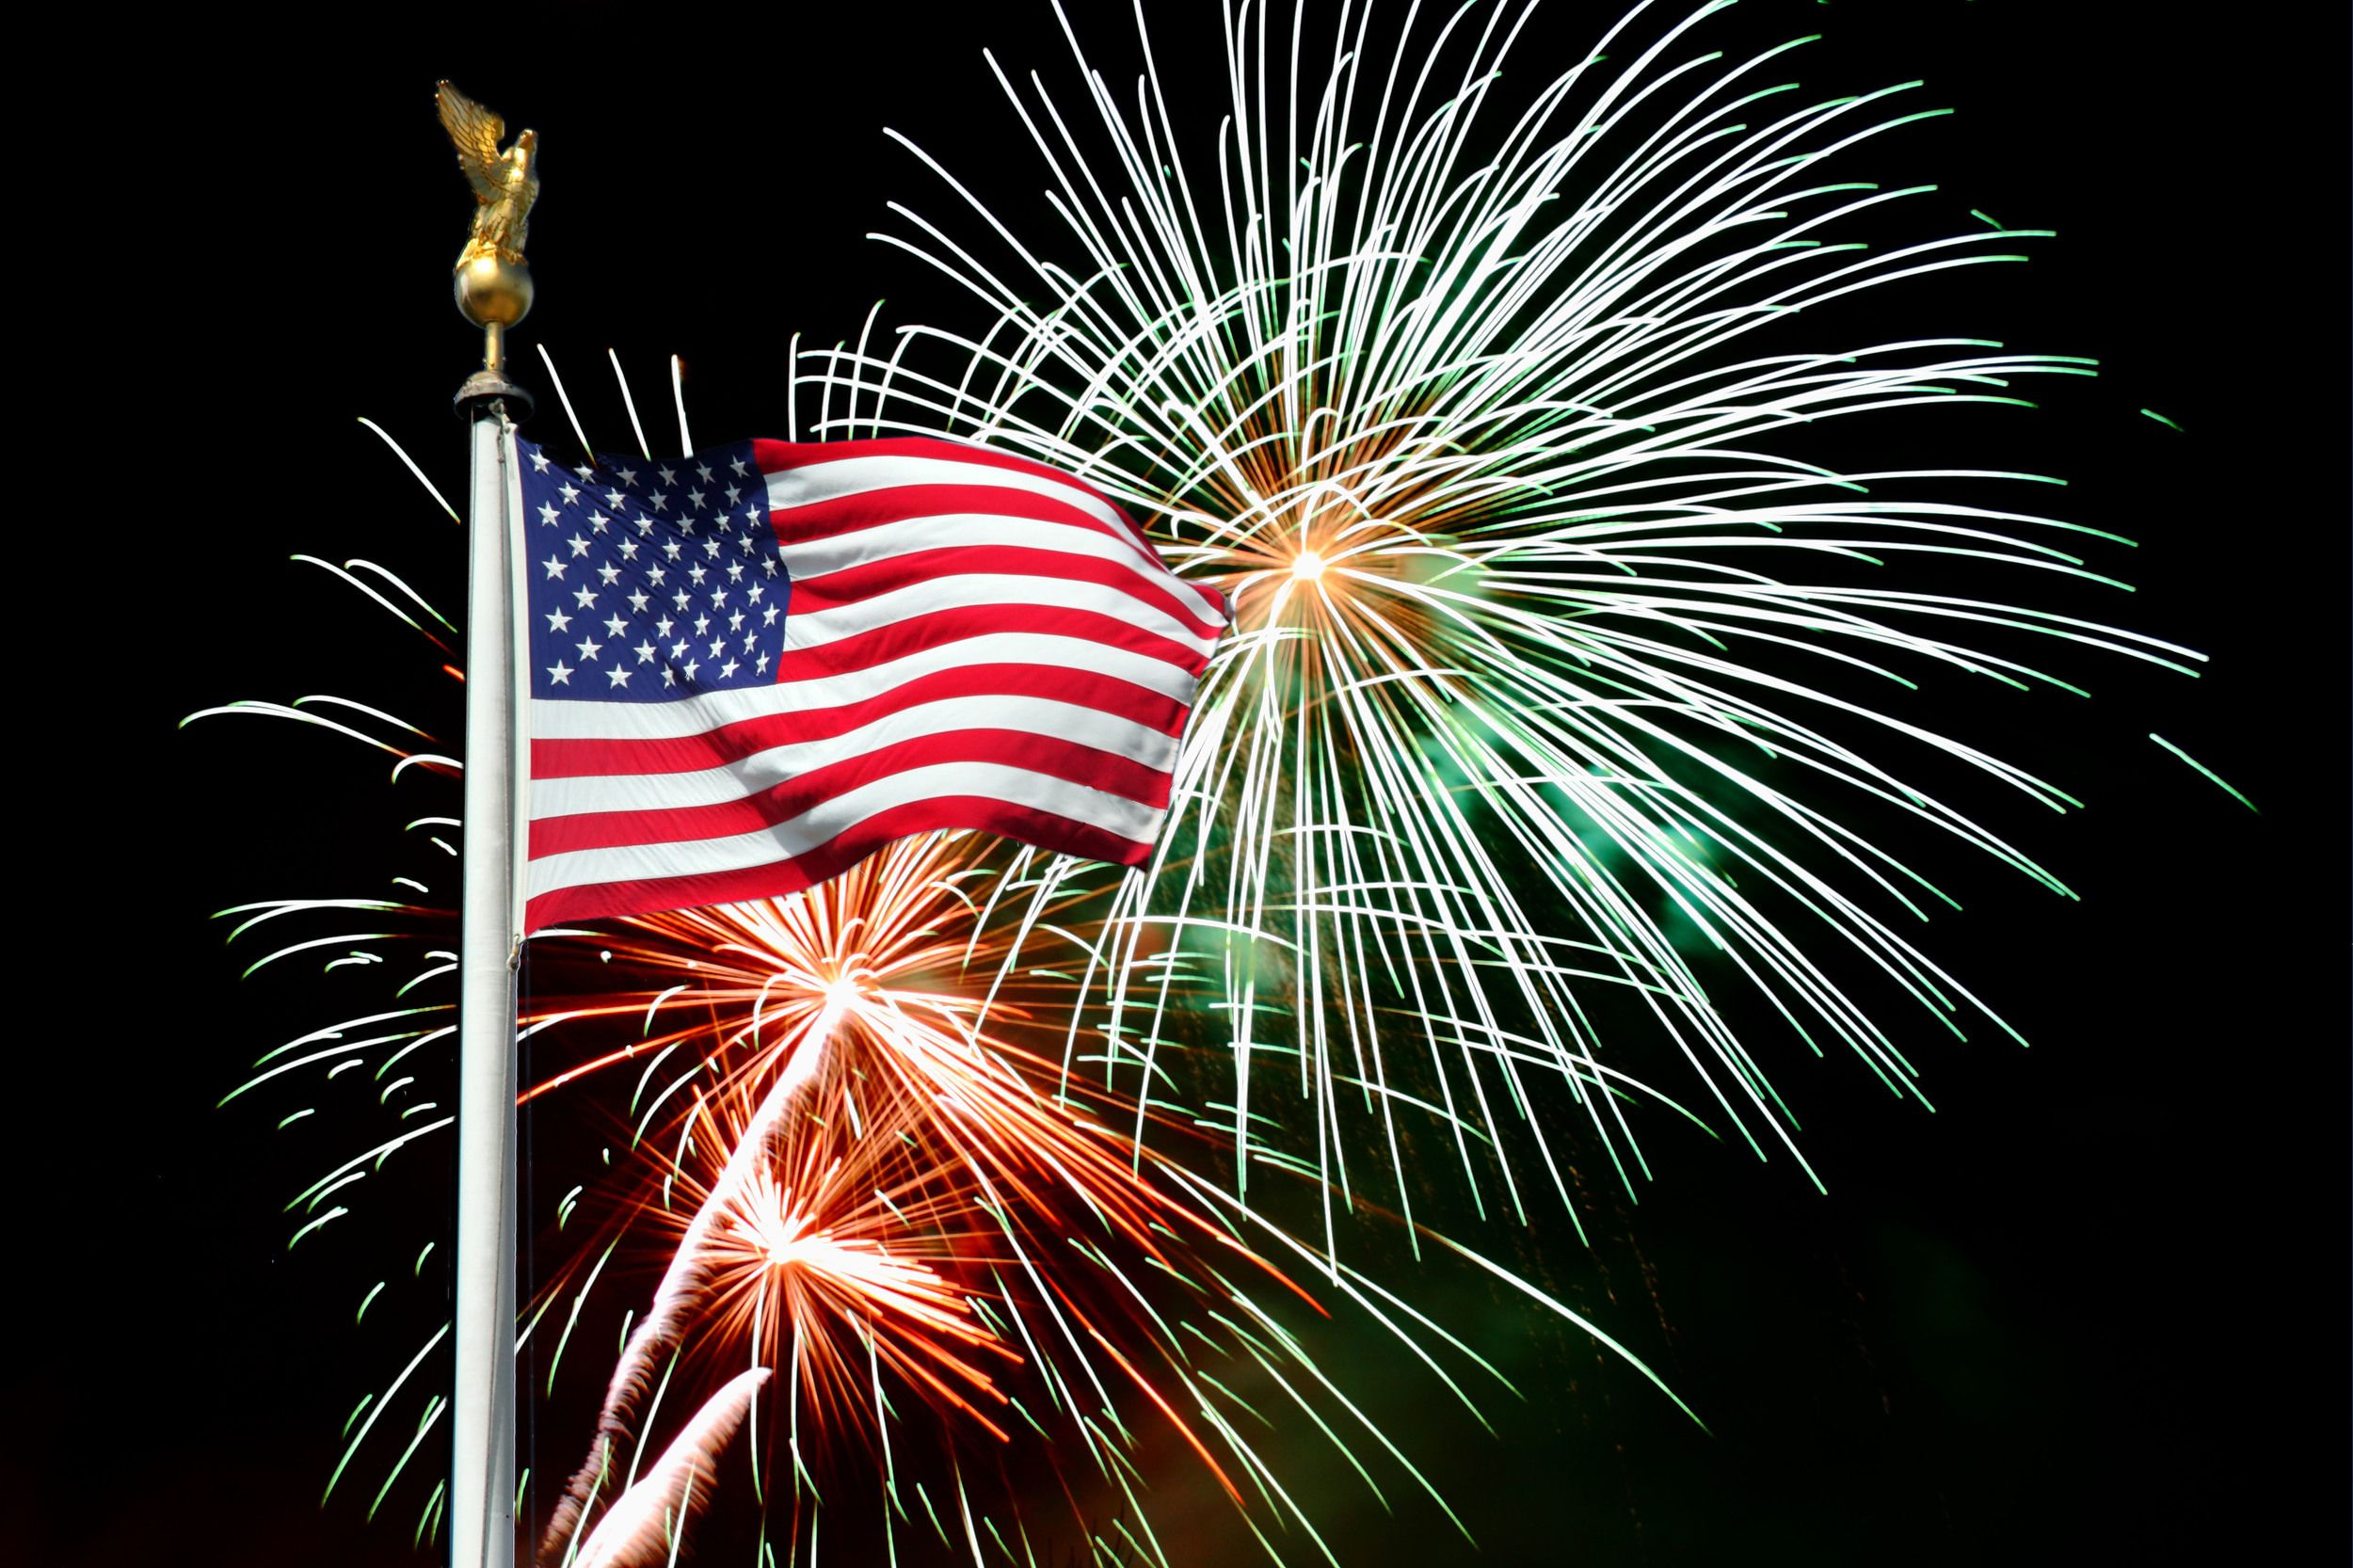 Fireworks And Us Flag Cakes Yahoo Image Search Results Free Art Prints Fireworks Background Fireworks